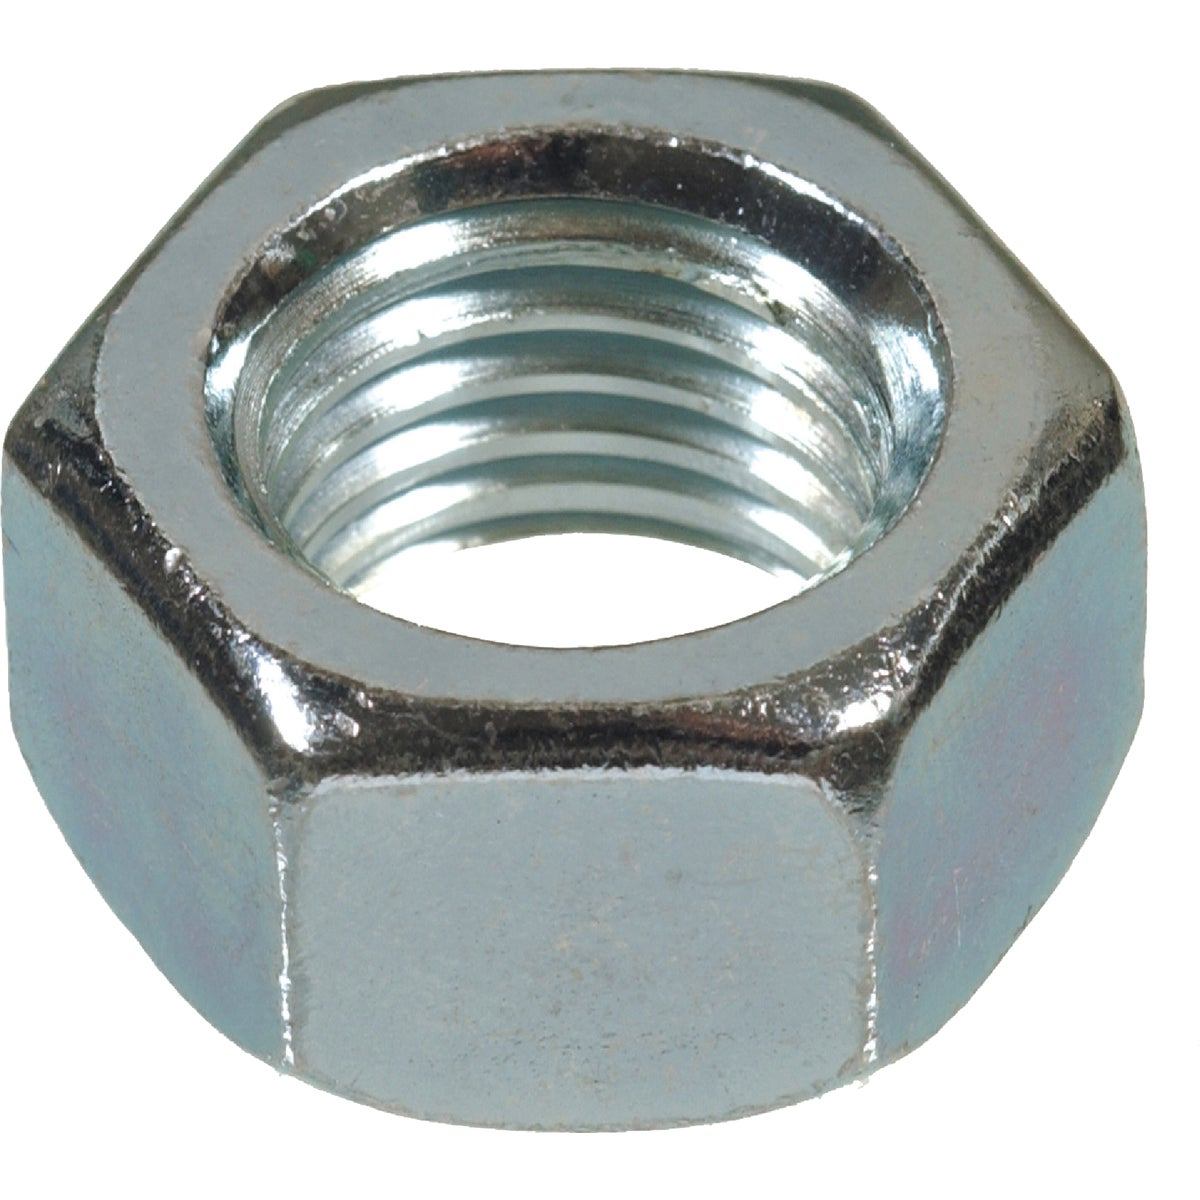 3/8-16 MACHINE SCREW NUT - 6218 by Hillman Fastener